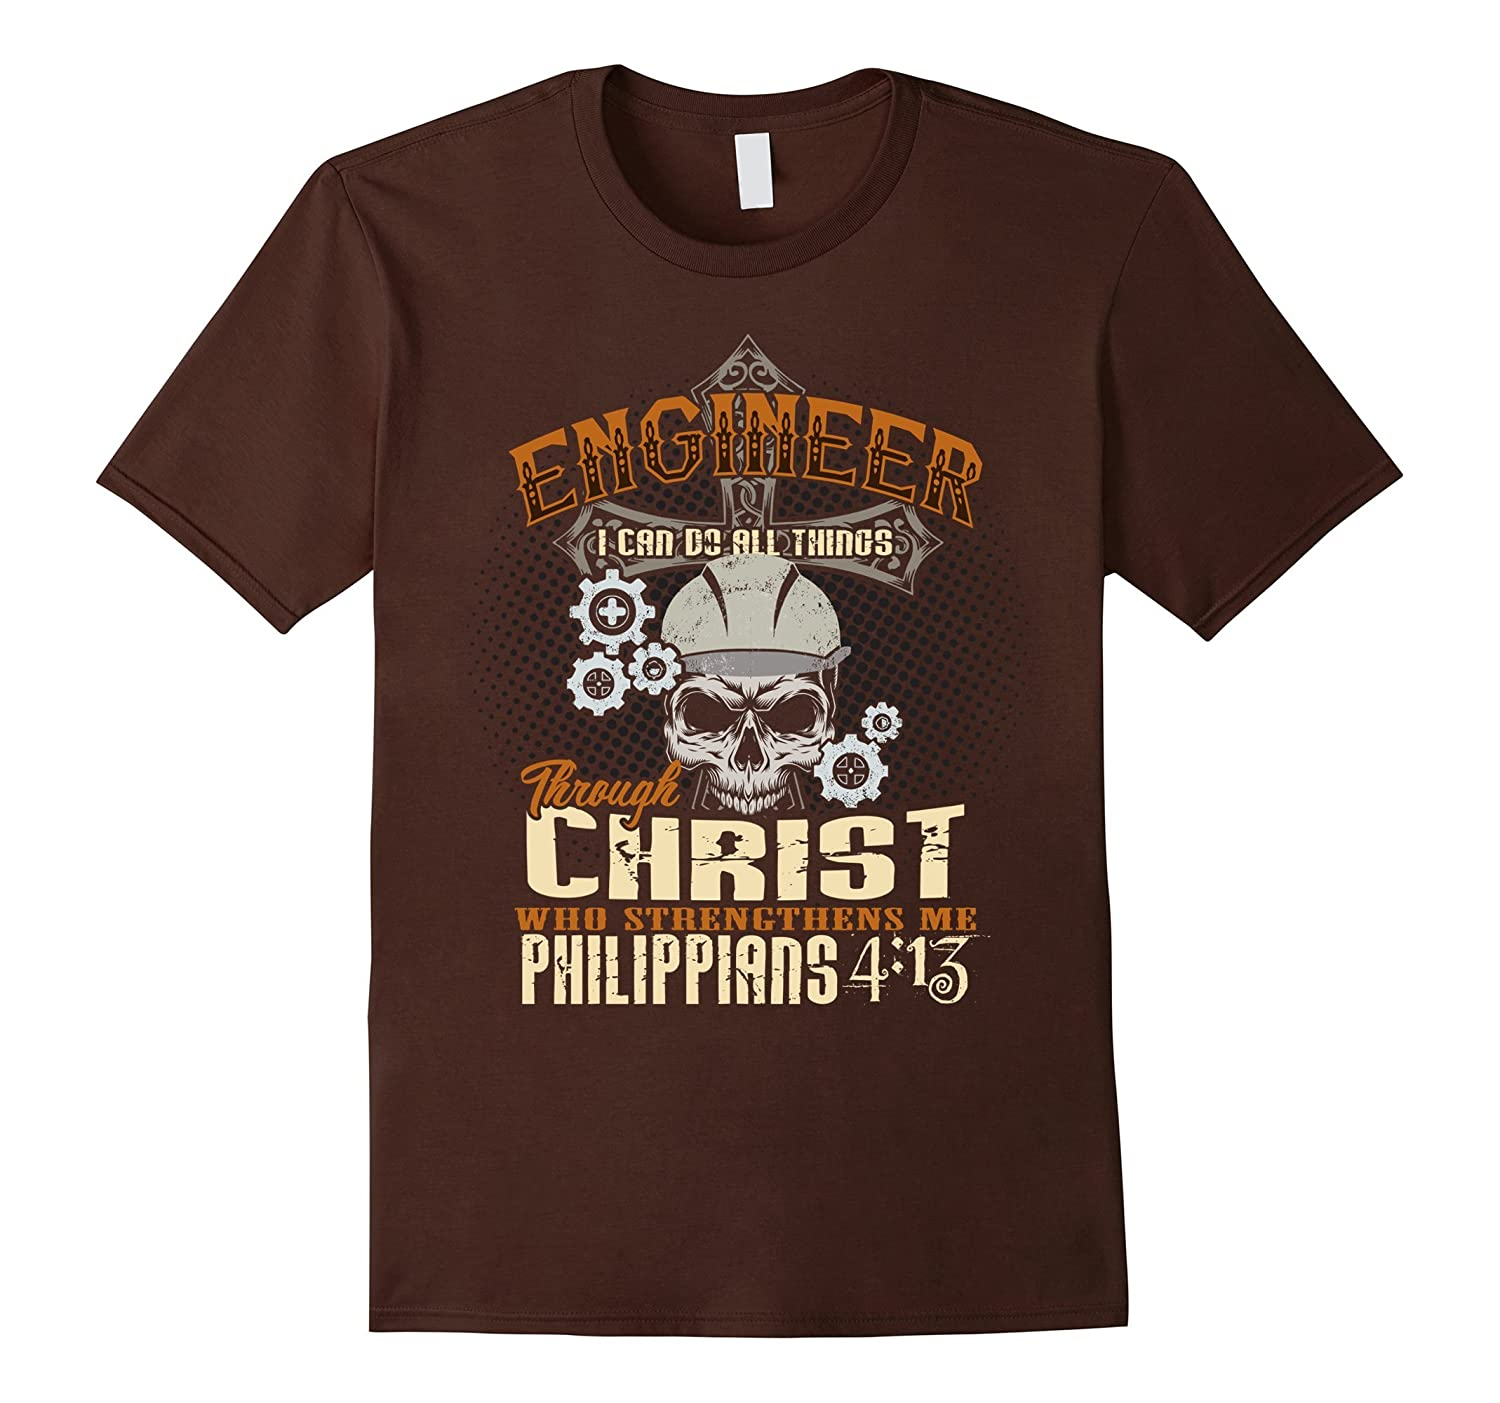 Engineer I Can Do All Things Through Christ T-Shirt